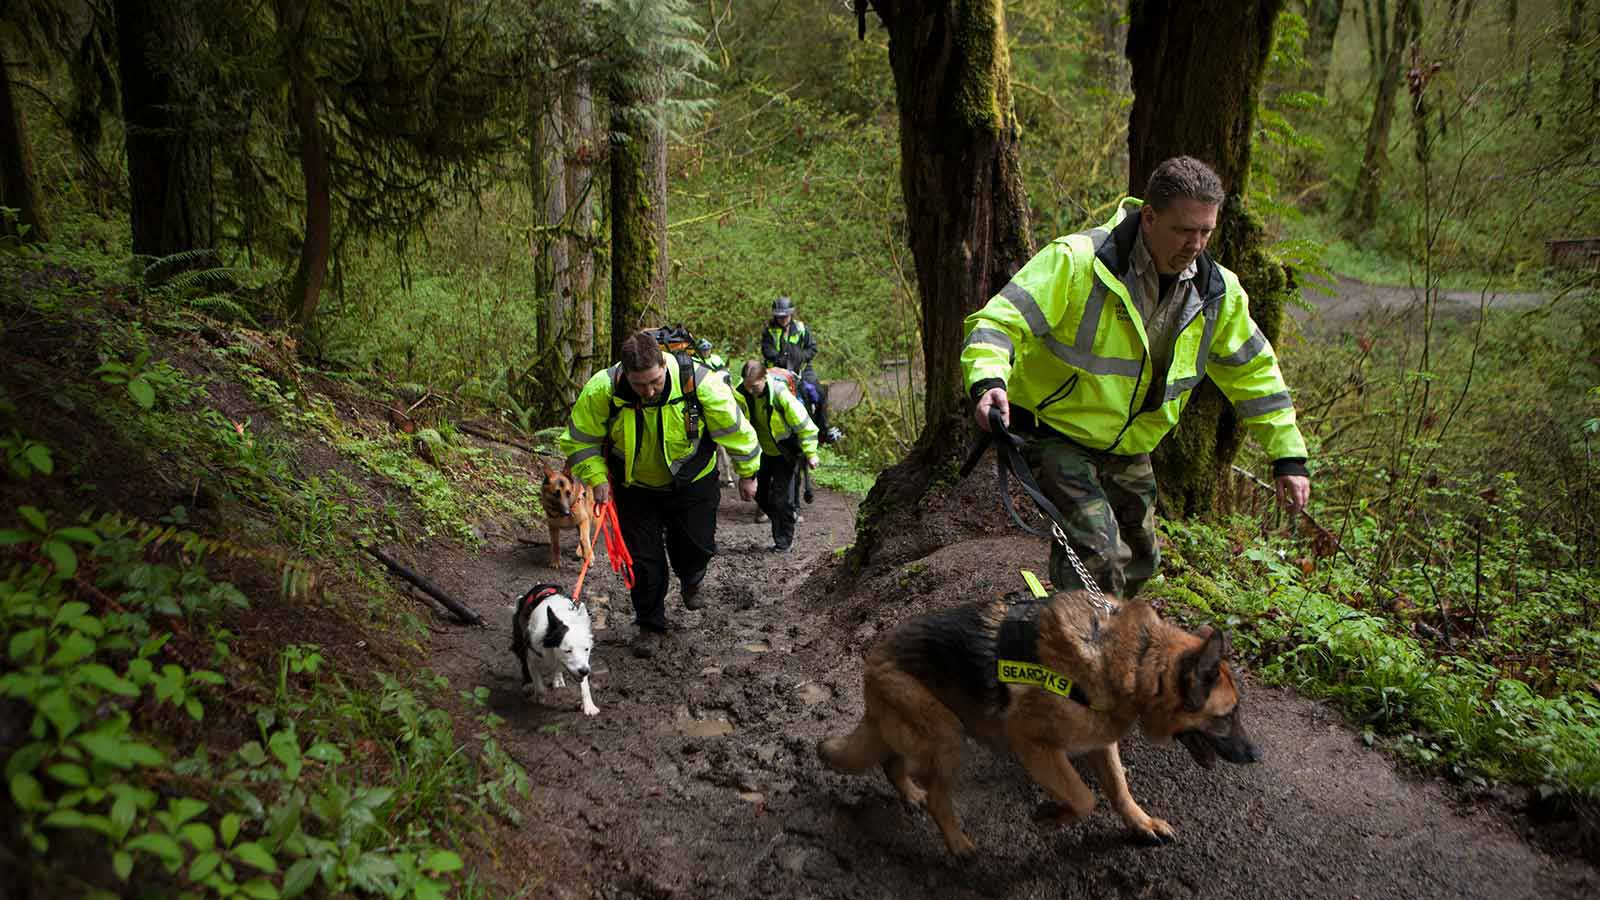 Men in neon jackets walking up a muddy path with dogs